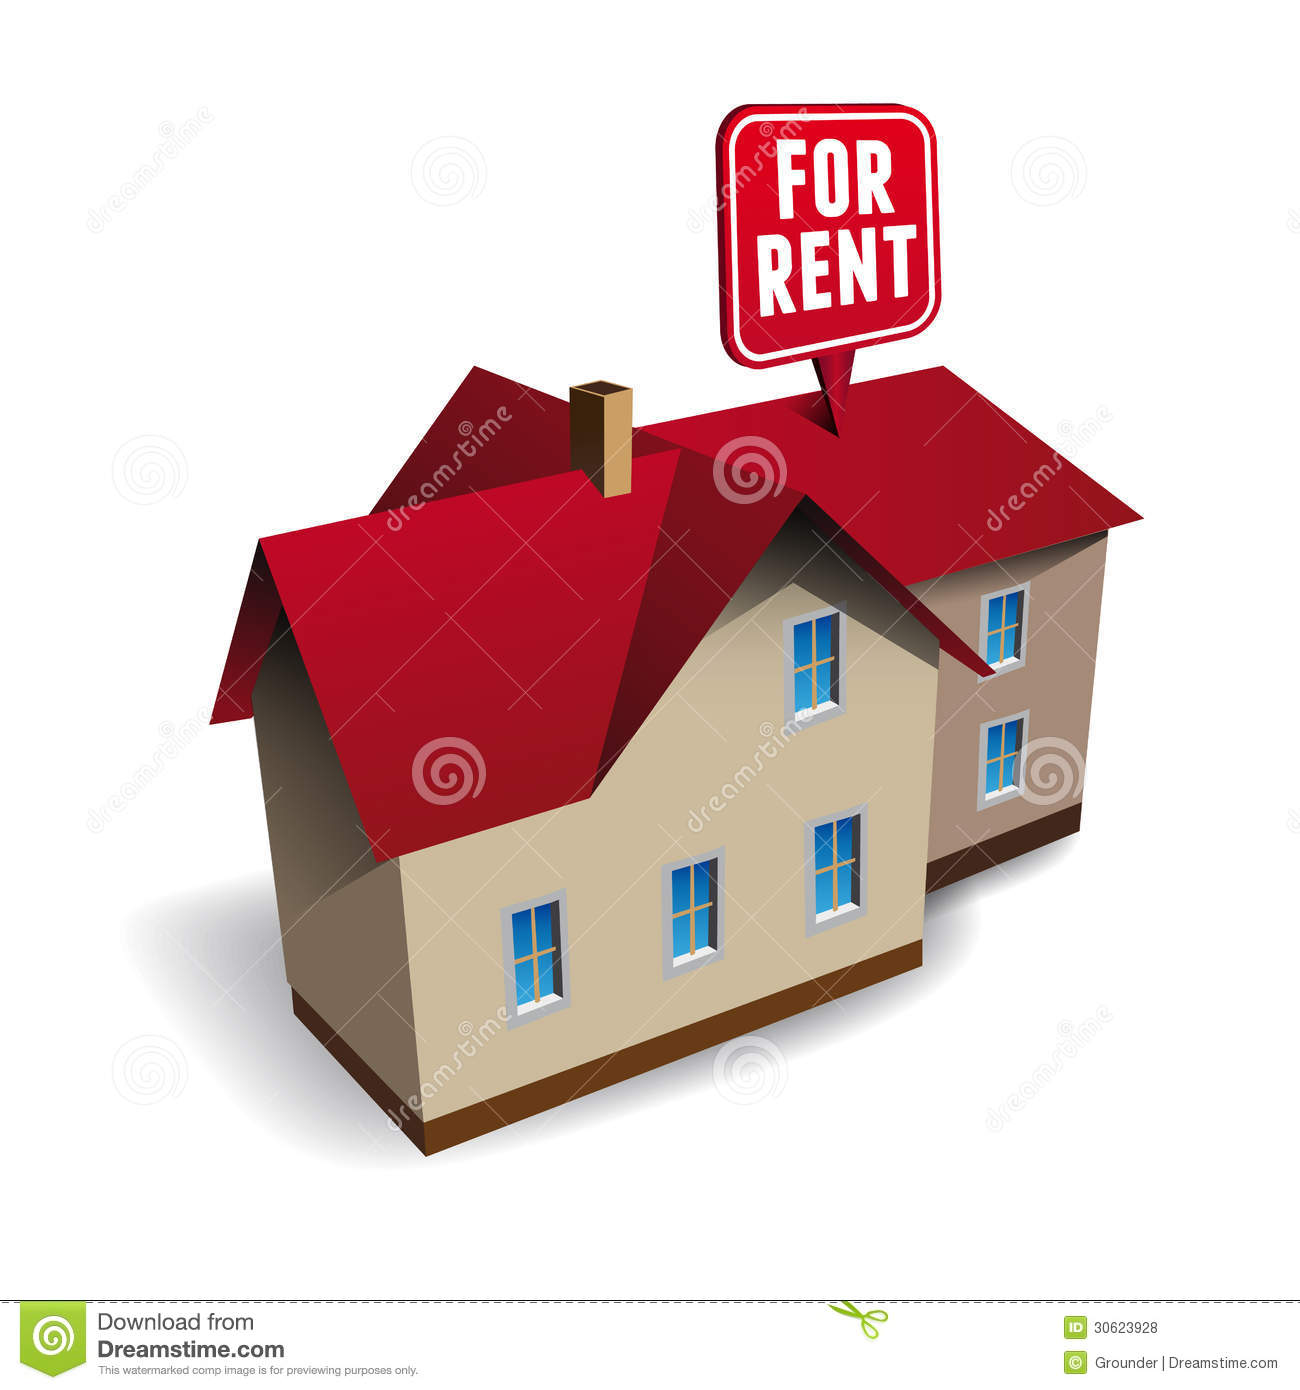 Free Houses For Rent: House For Rent Vector Stock Vector. Image Of Button